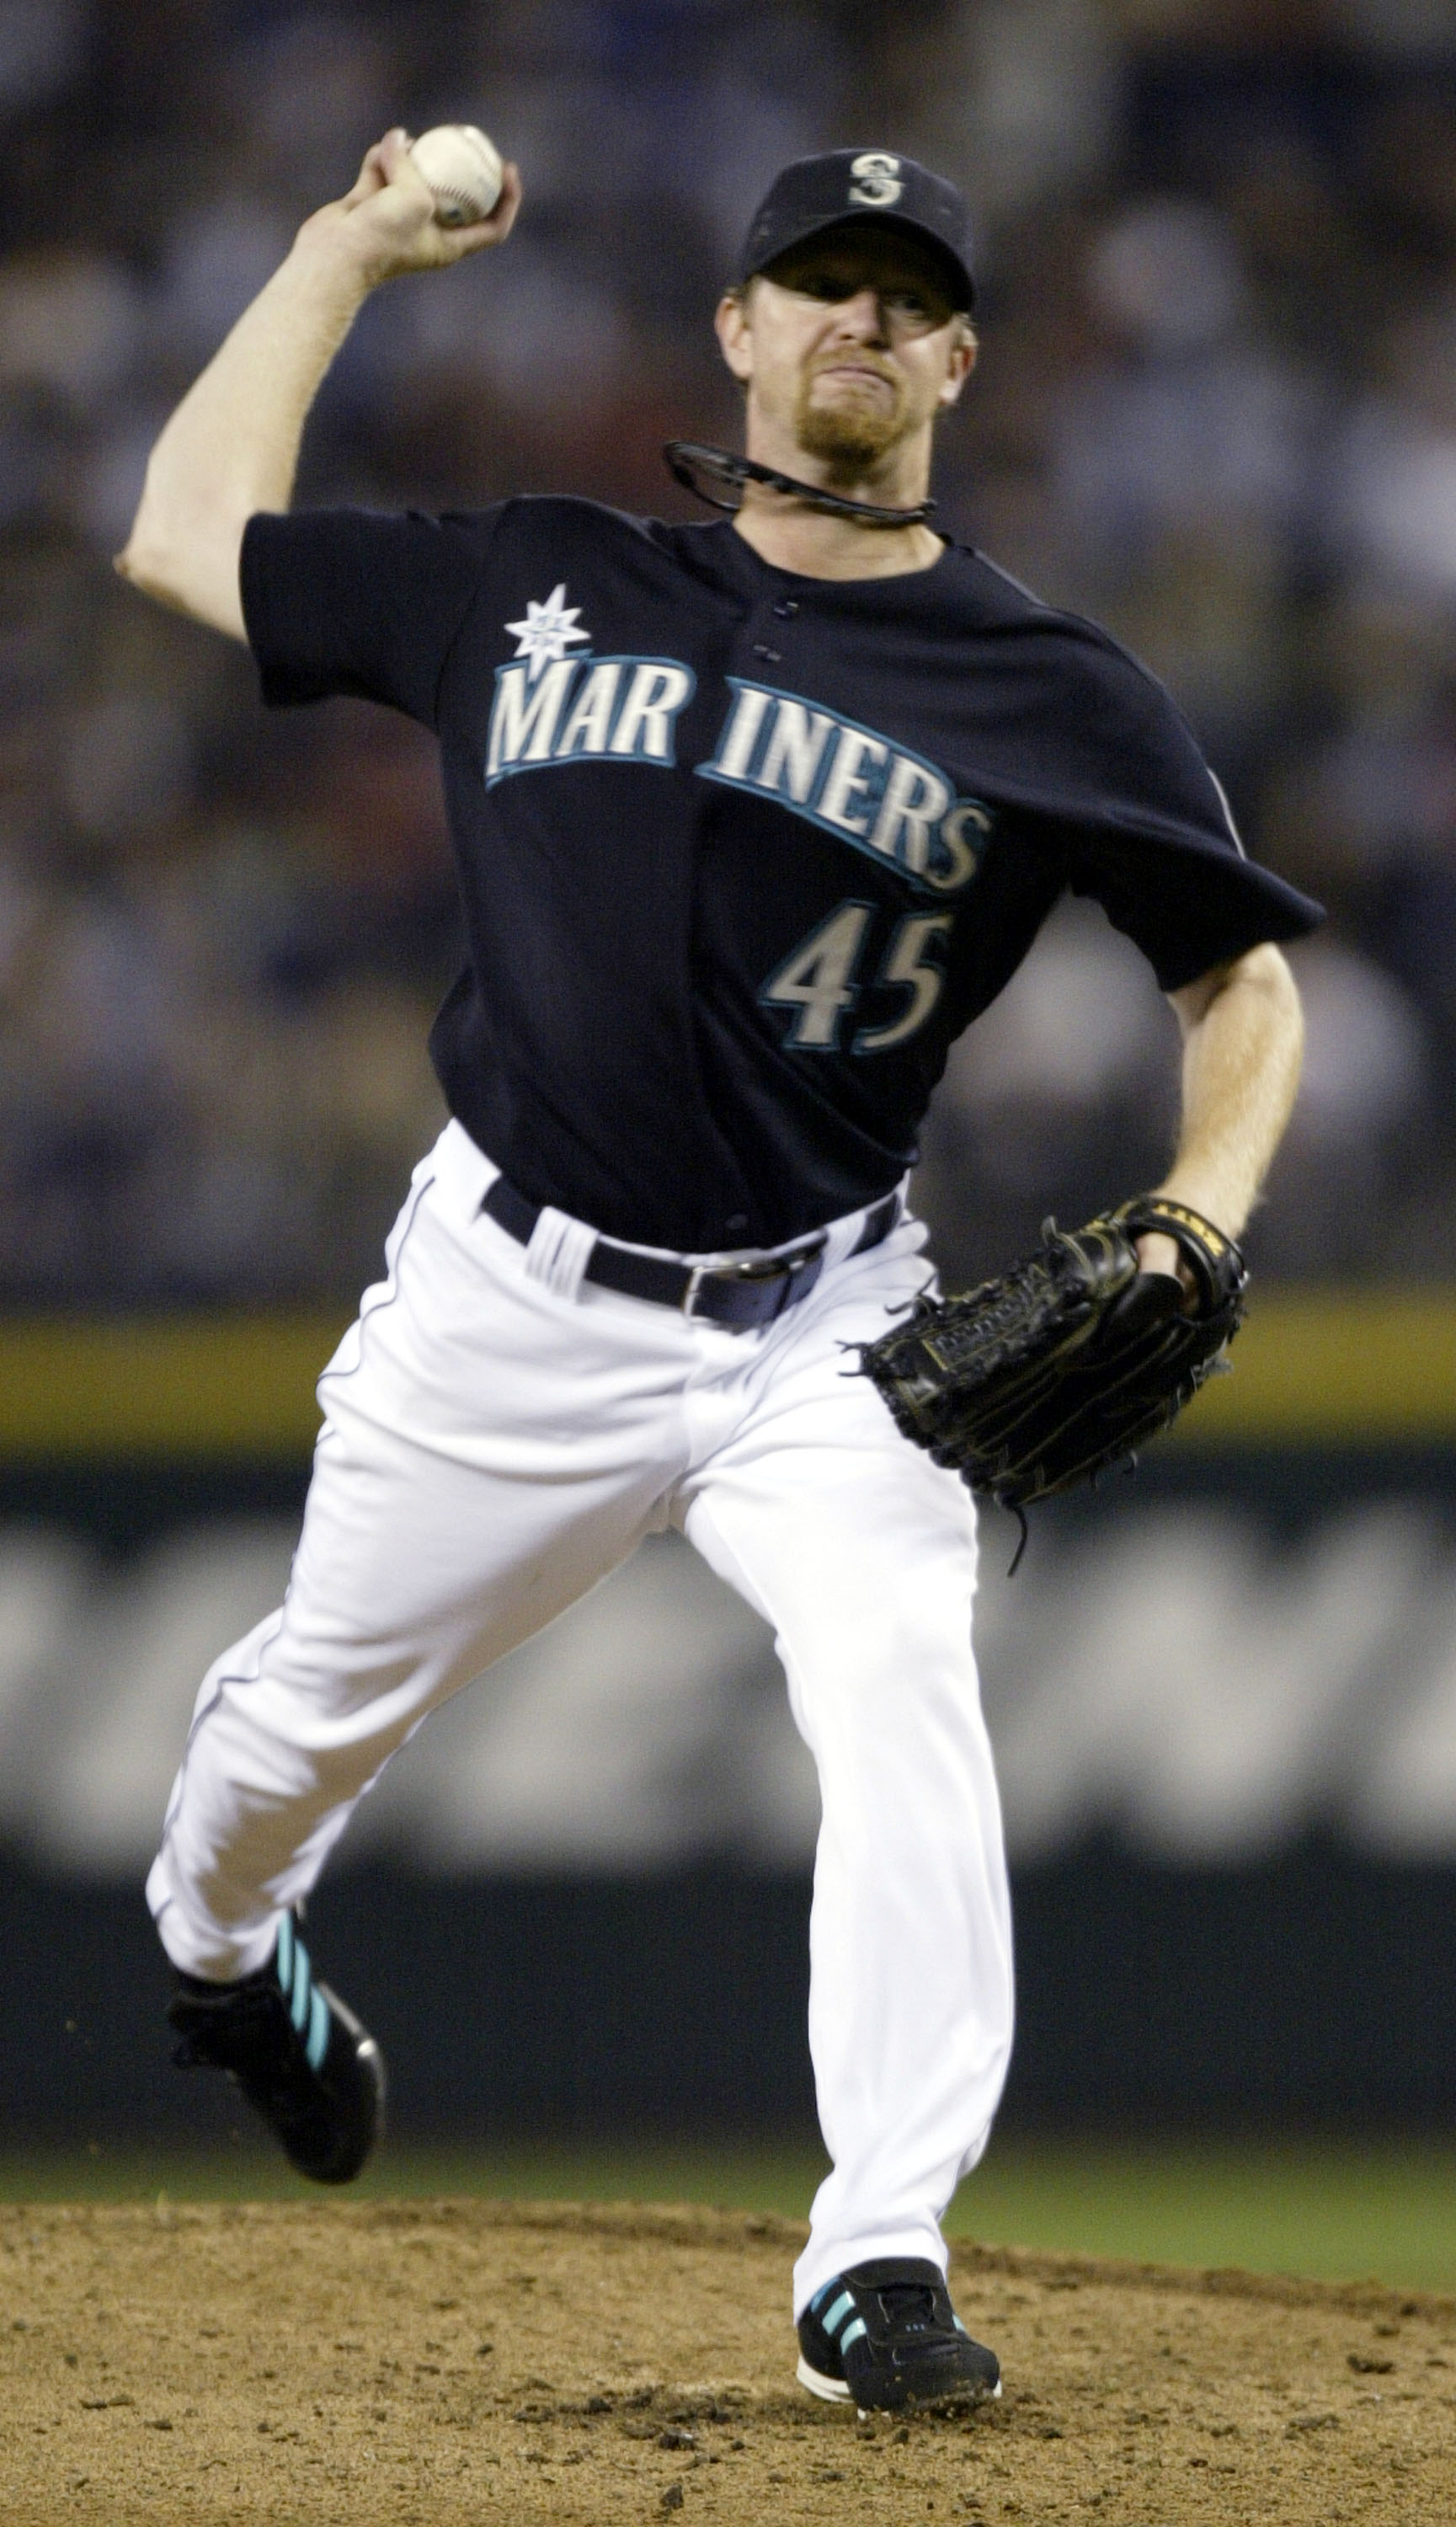 SEATTLE - AUGUST 29: Starting Pitcher Ryan Franklin #45 of the Seattle Mariners pitches against the New York Yankees on August 29, 2005 at Safeco Field in Seattle, Washington. (Photo by Otto Greule Jr/Getty Images)